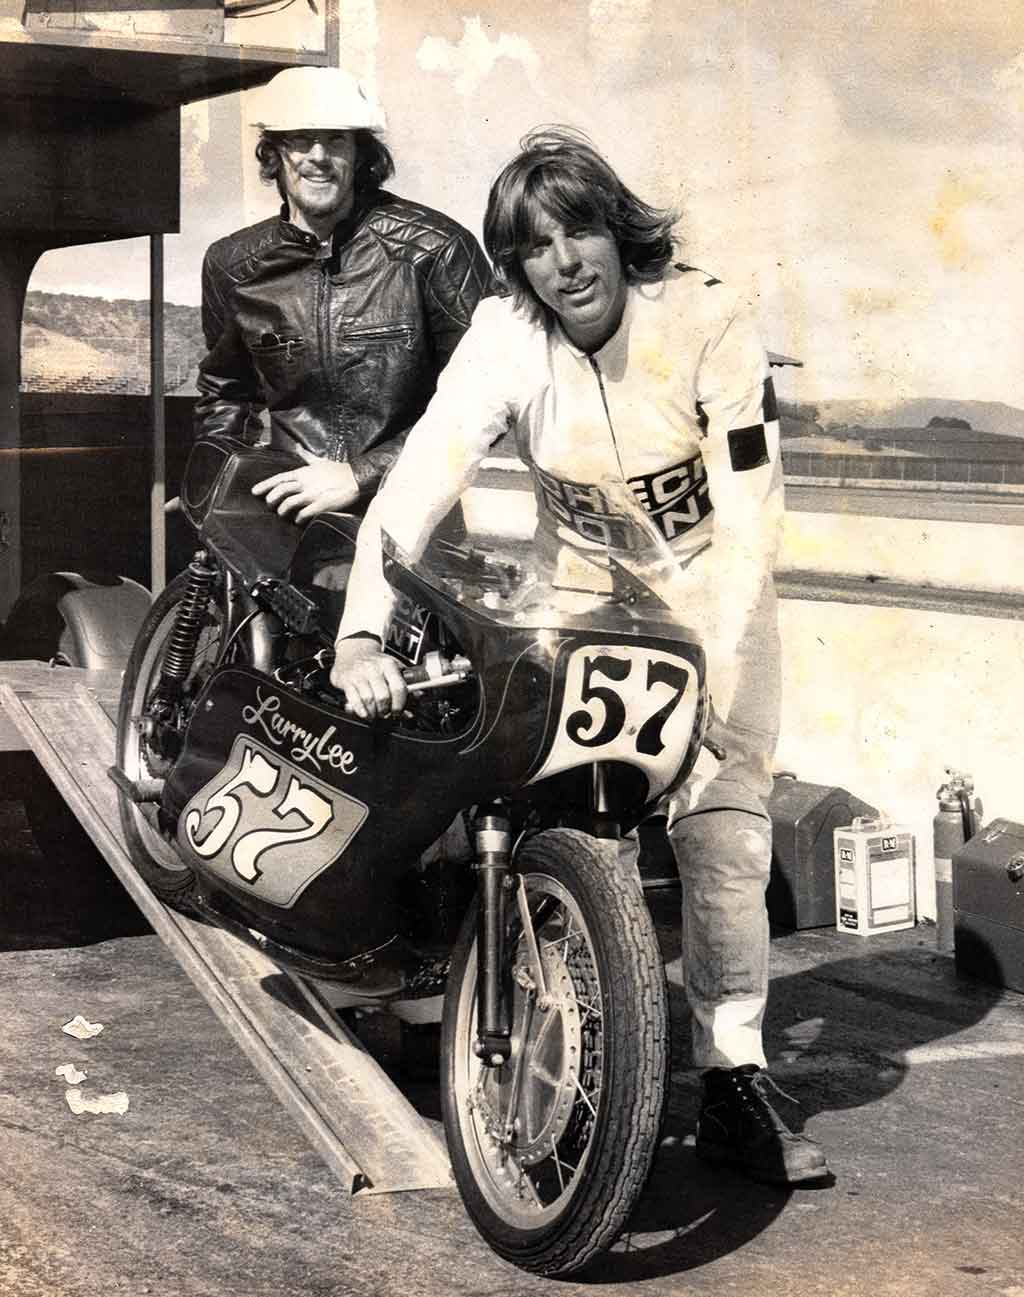 Larry Lee with his racing bike